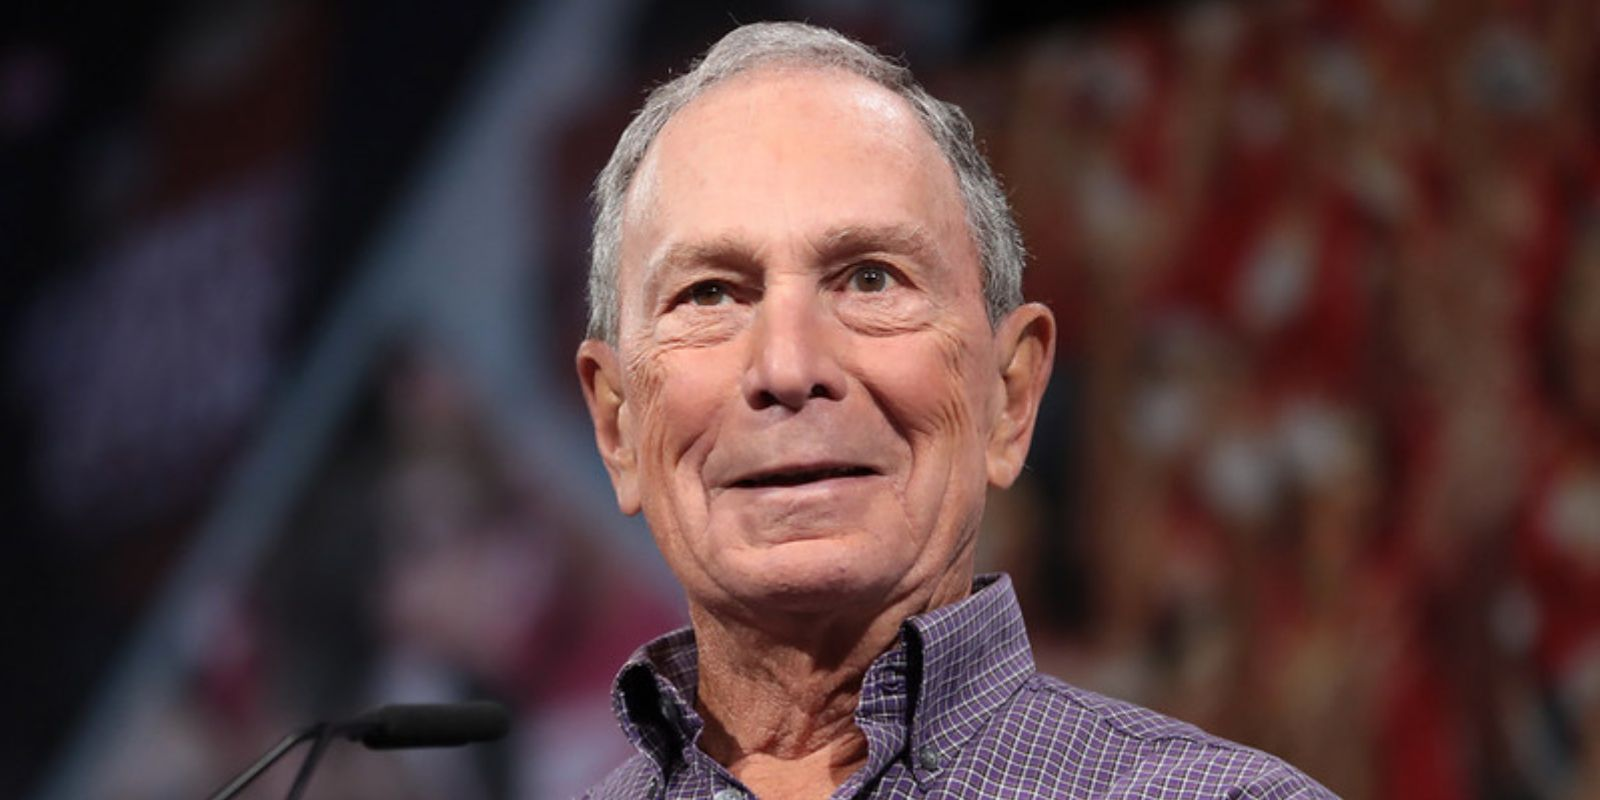 Bloomberg pays over $16 million so felons can vote